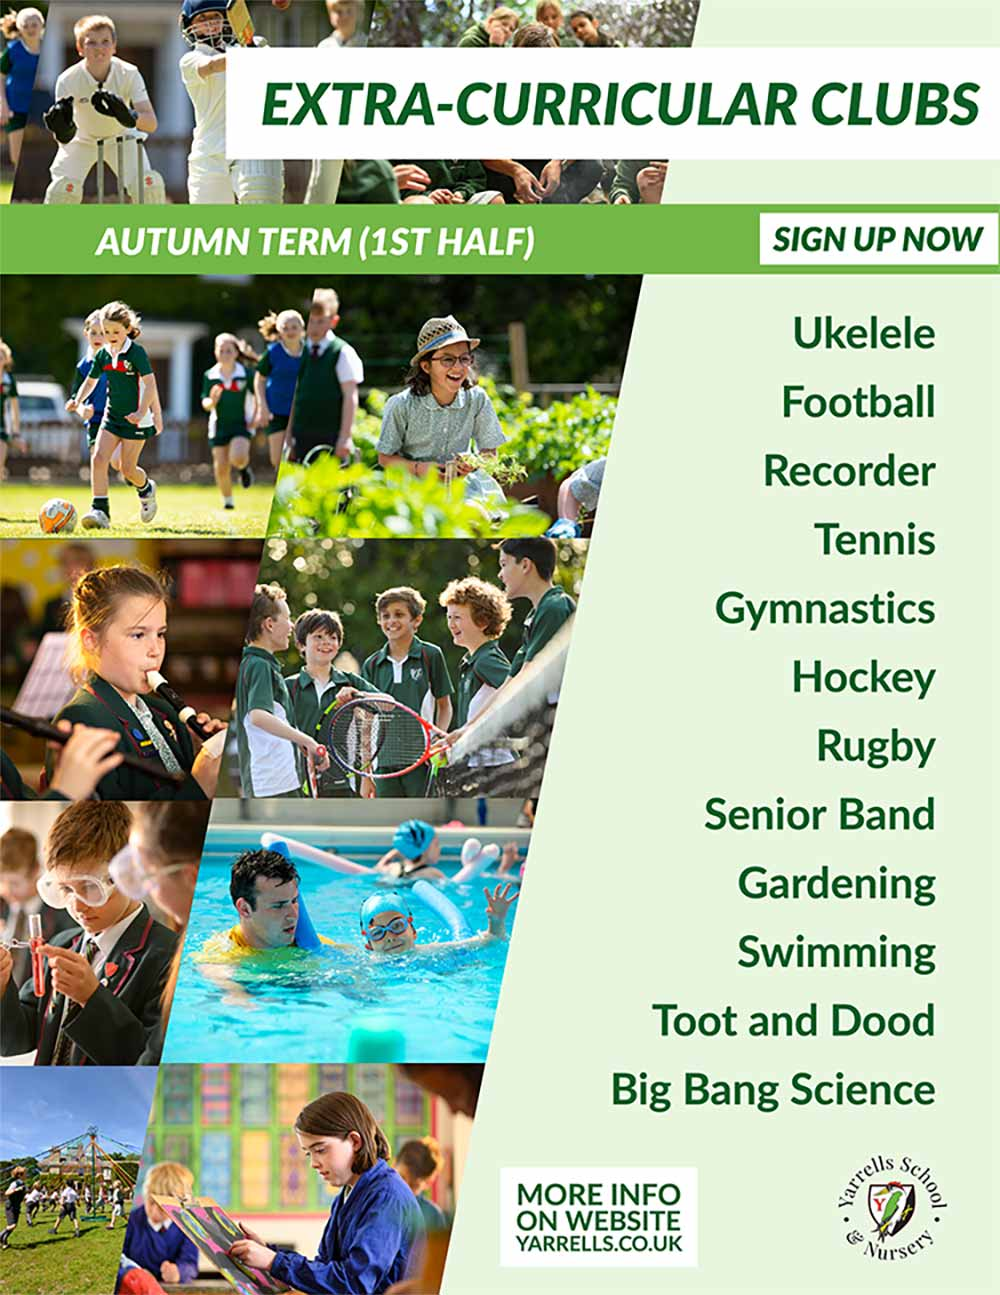 SIGN UP NOW To Our Extra Curricular Clubs